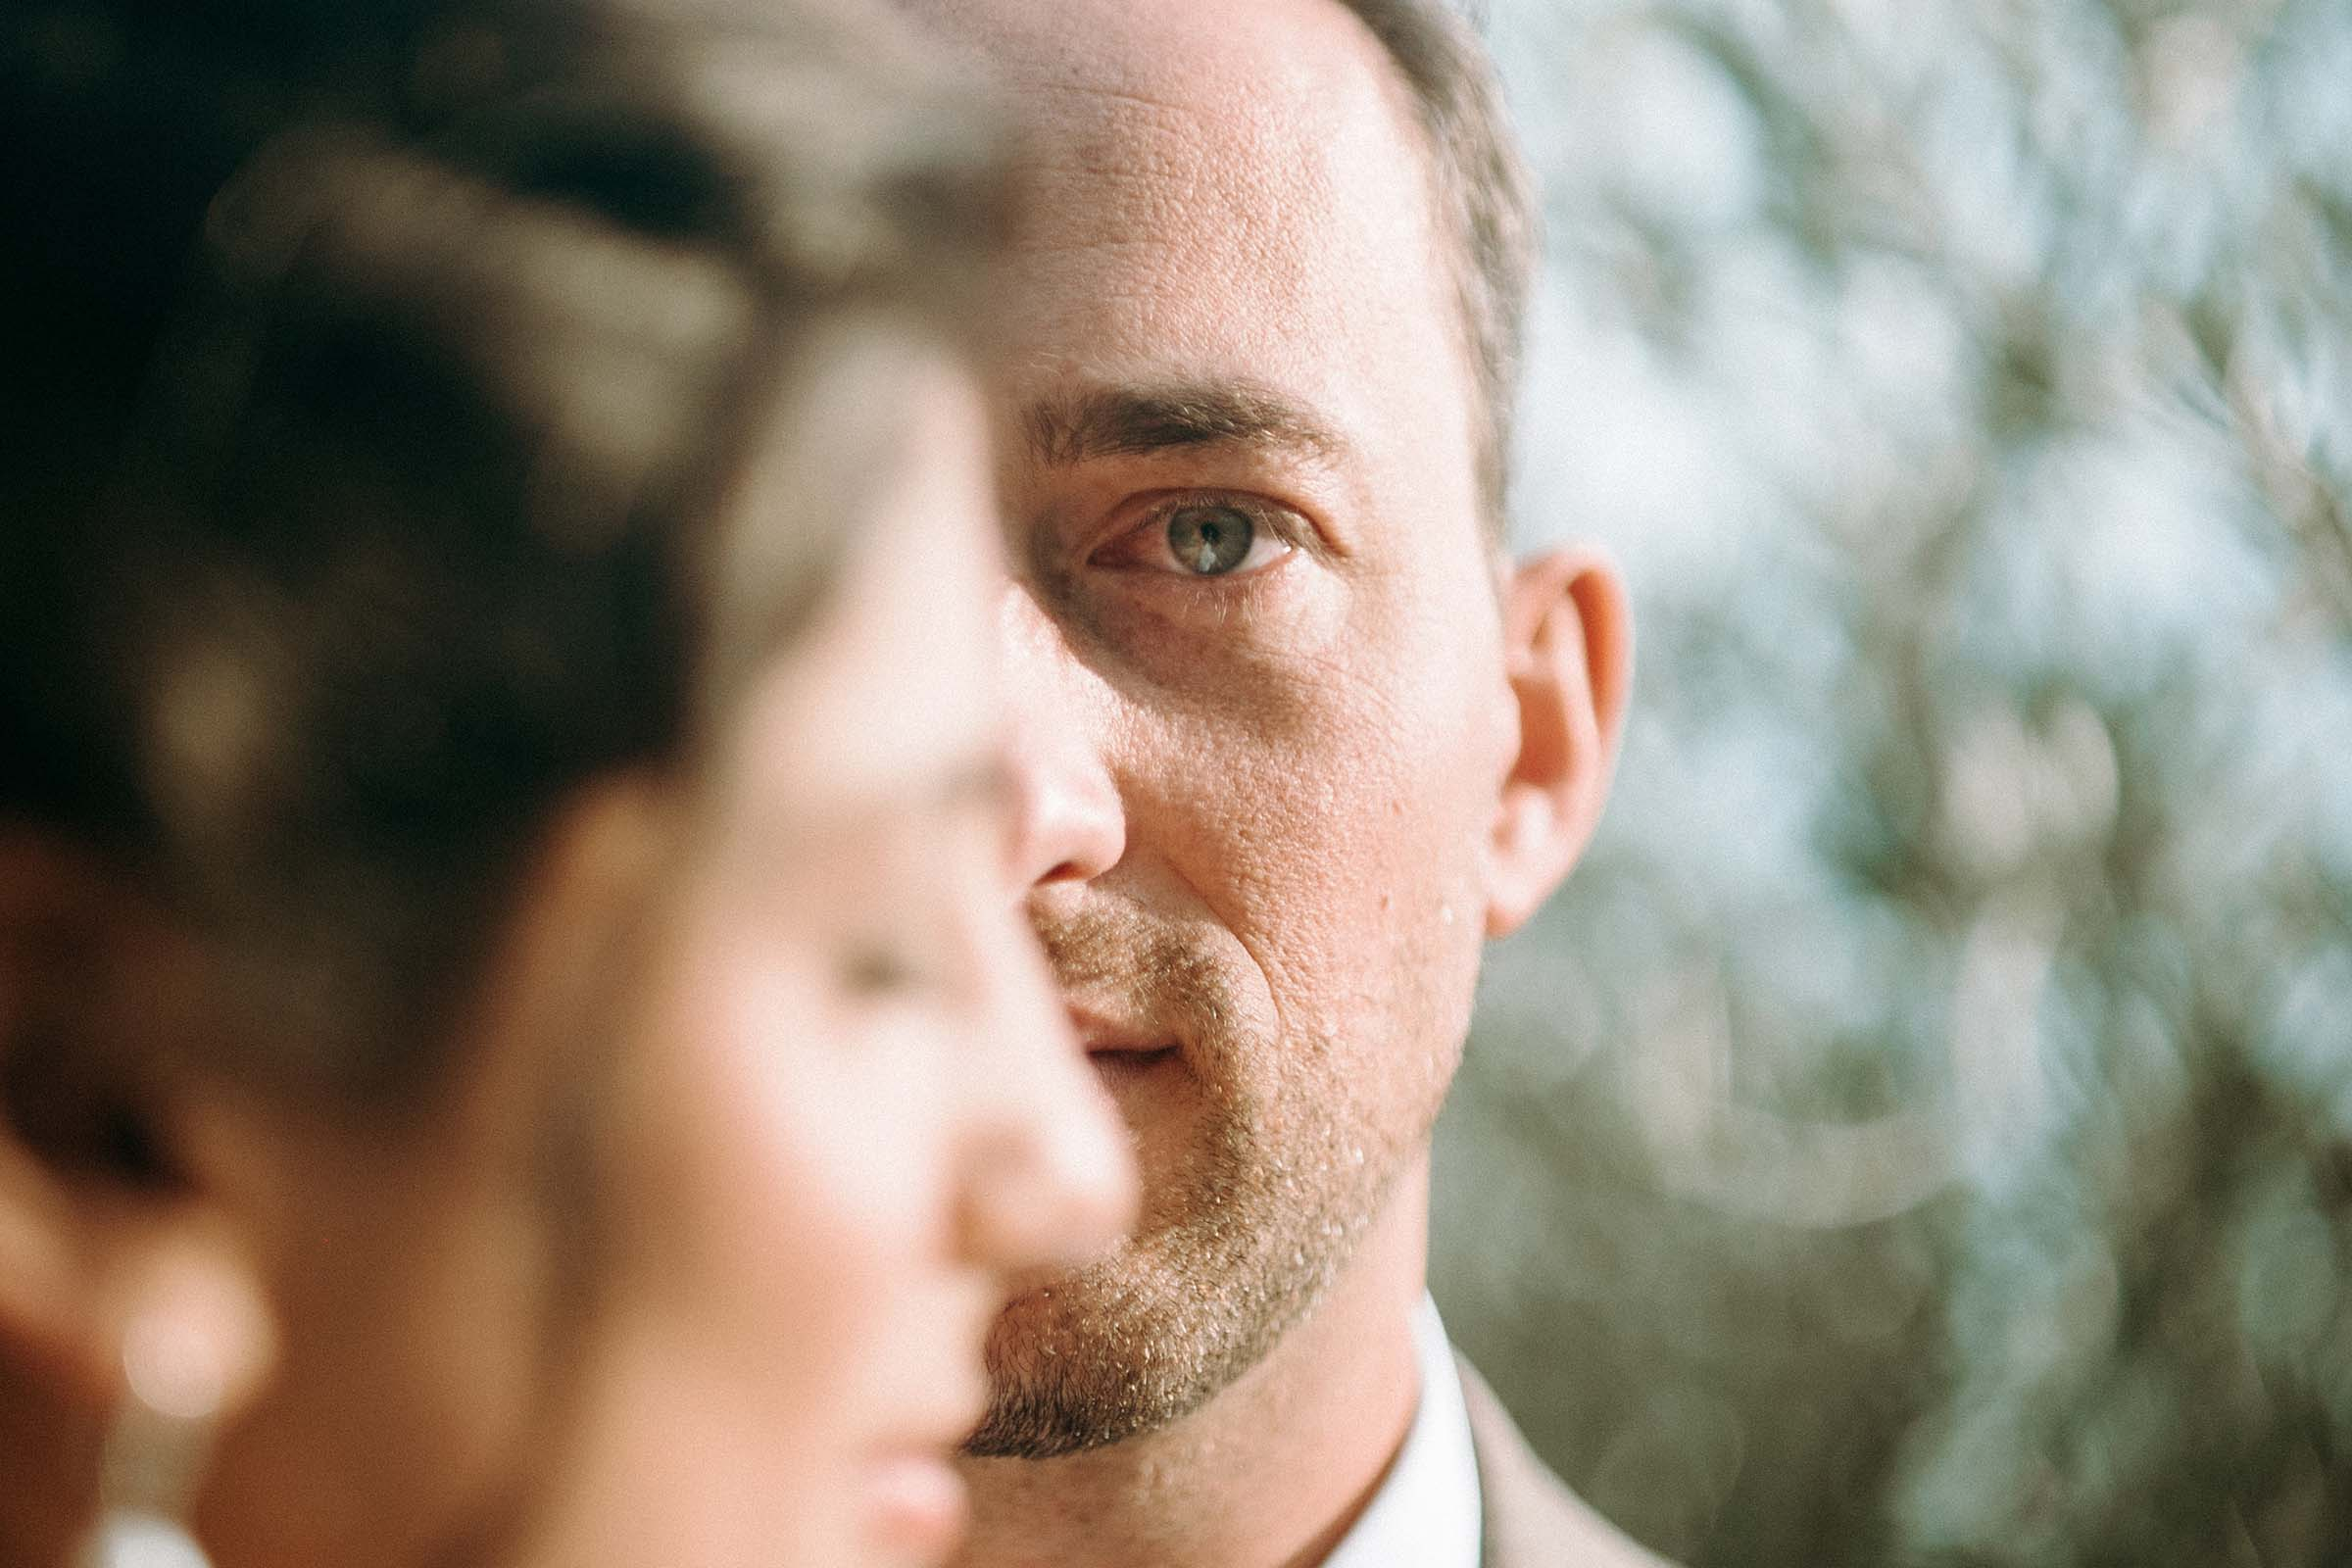 groom with green eyes staring straight into the camera with bride covering half of the face